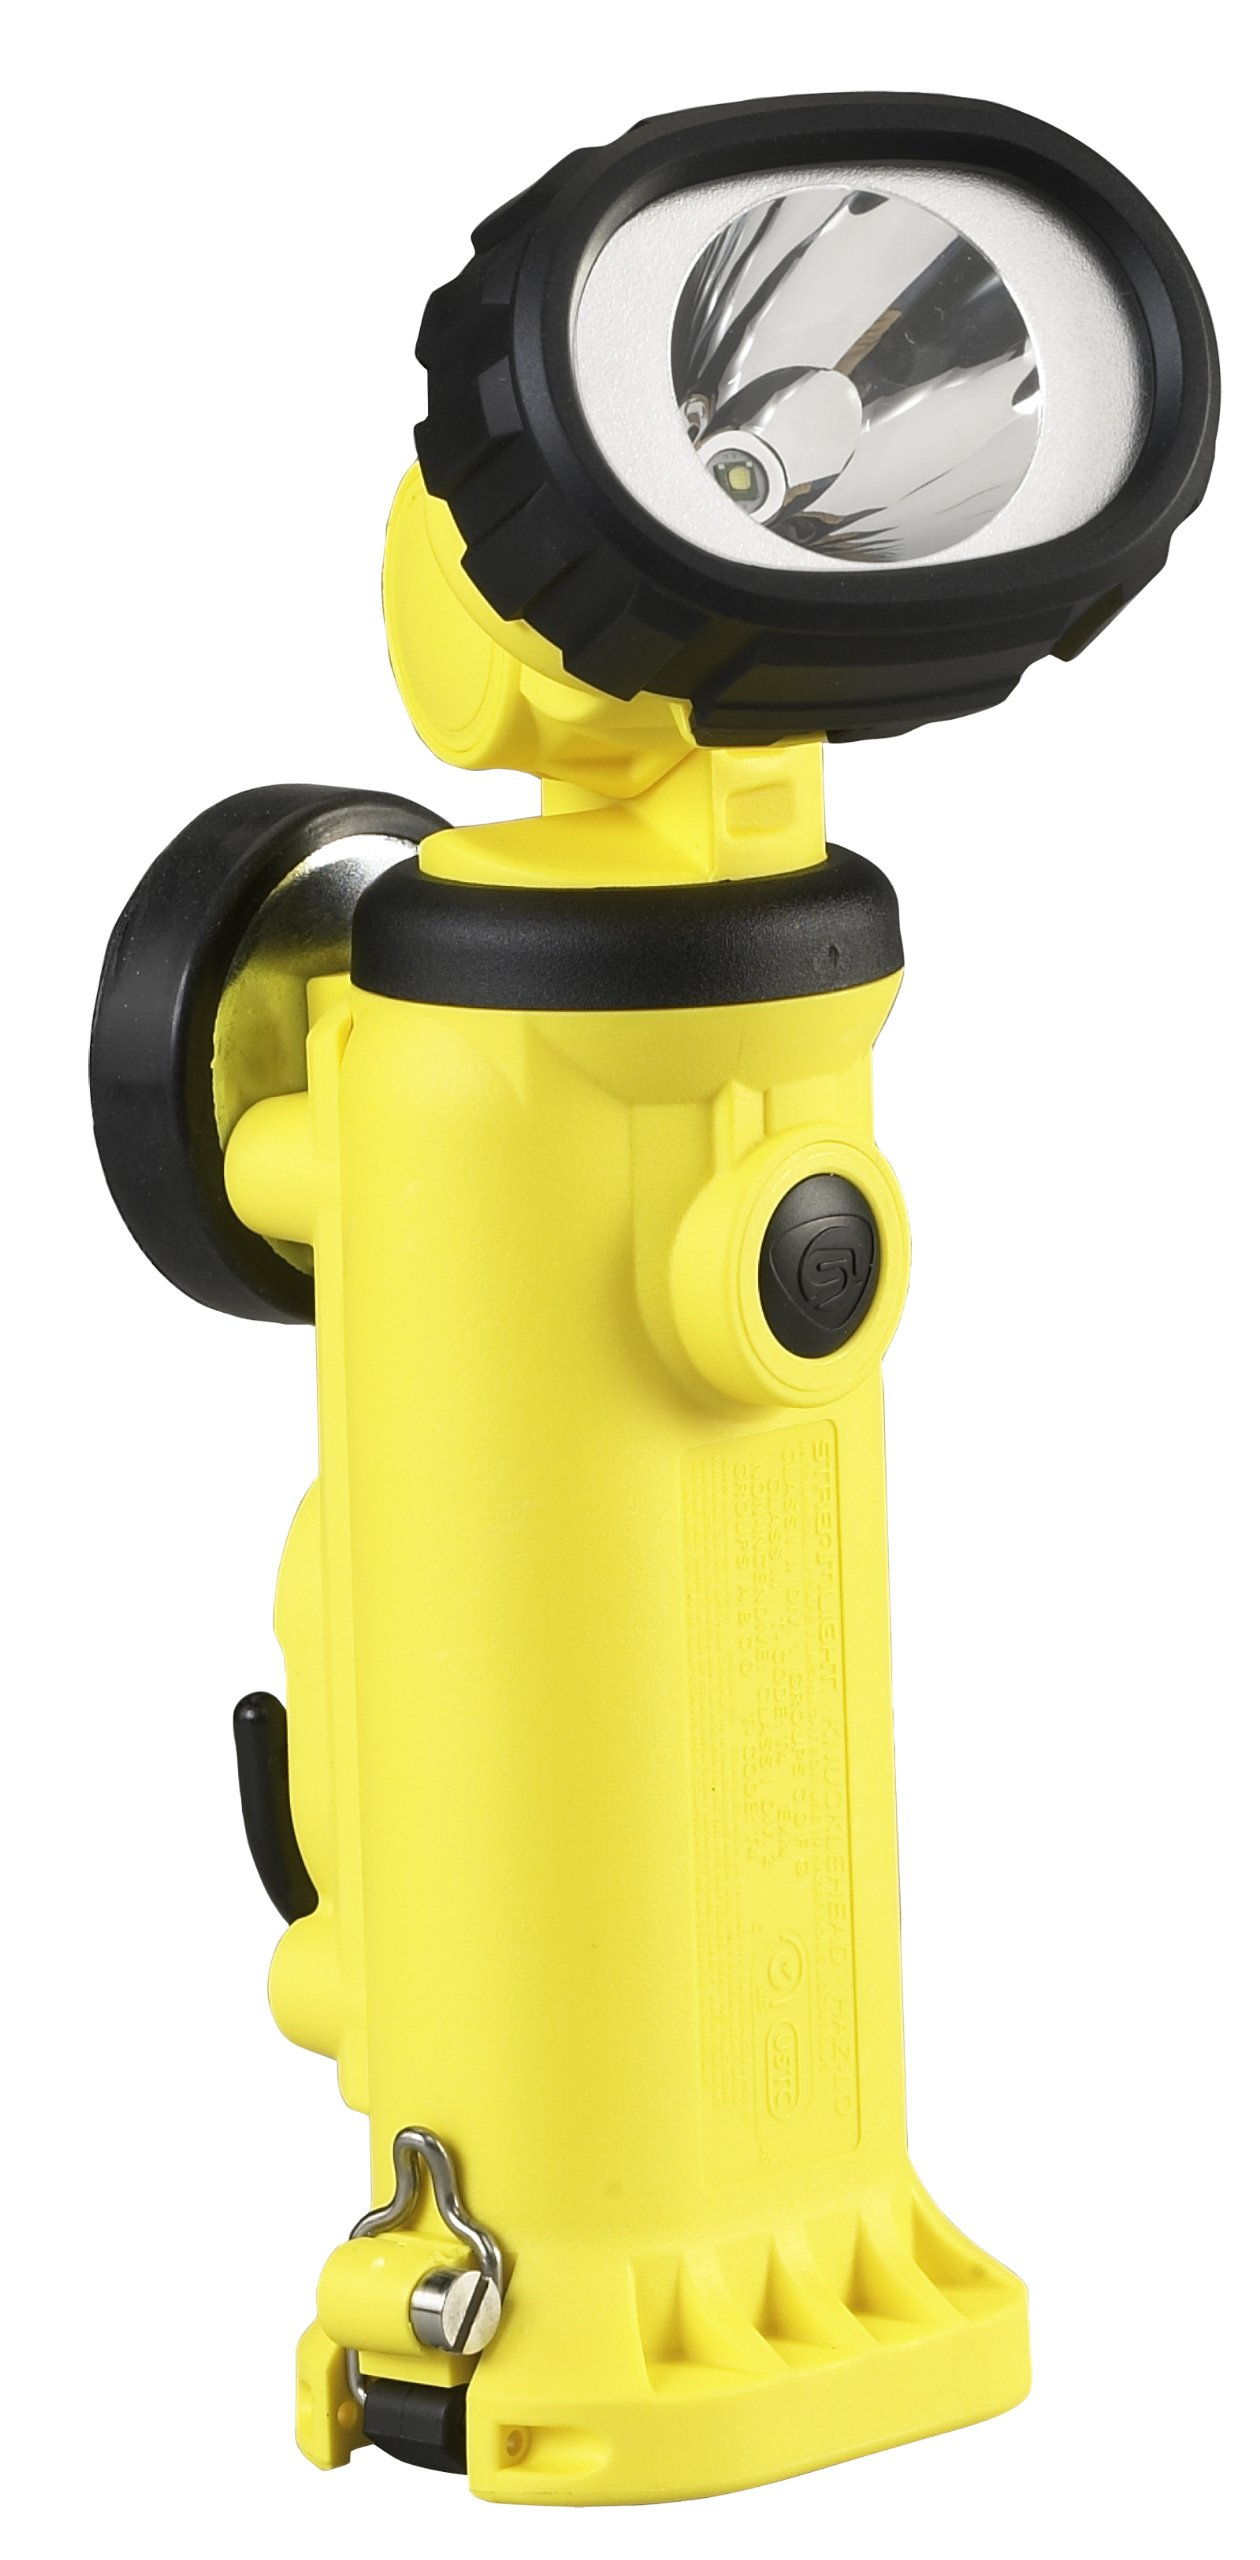 Streamlight 91727 Knucklehead HAZ-LO Rechargeable Spot Light with 120-volt AC/12-volt DC Charger, Yellow